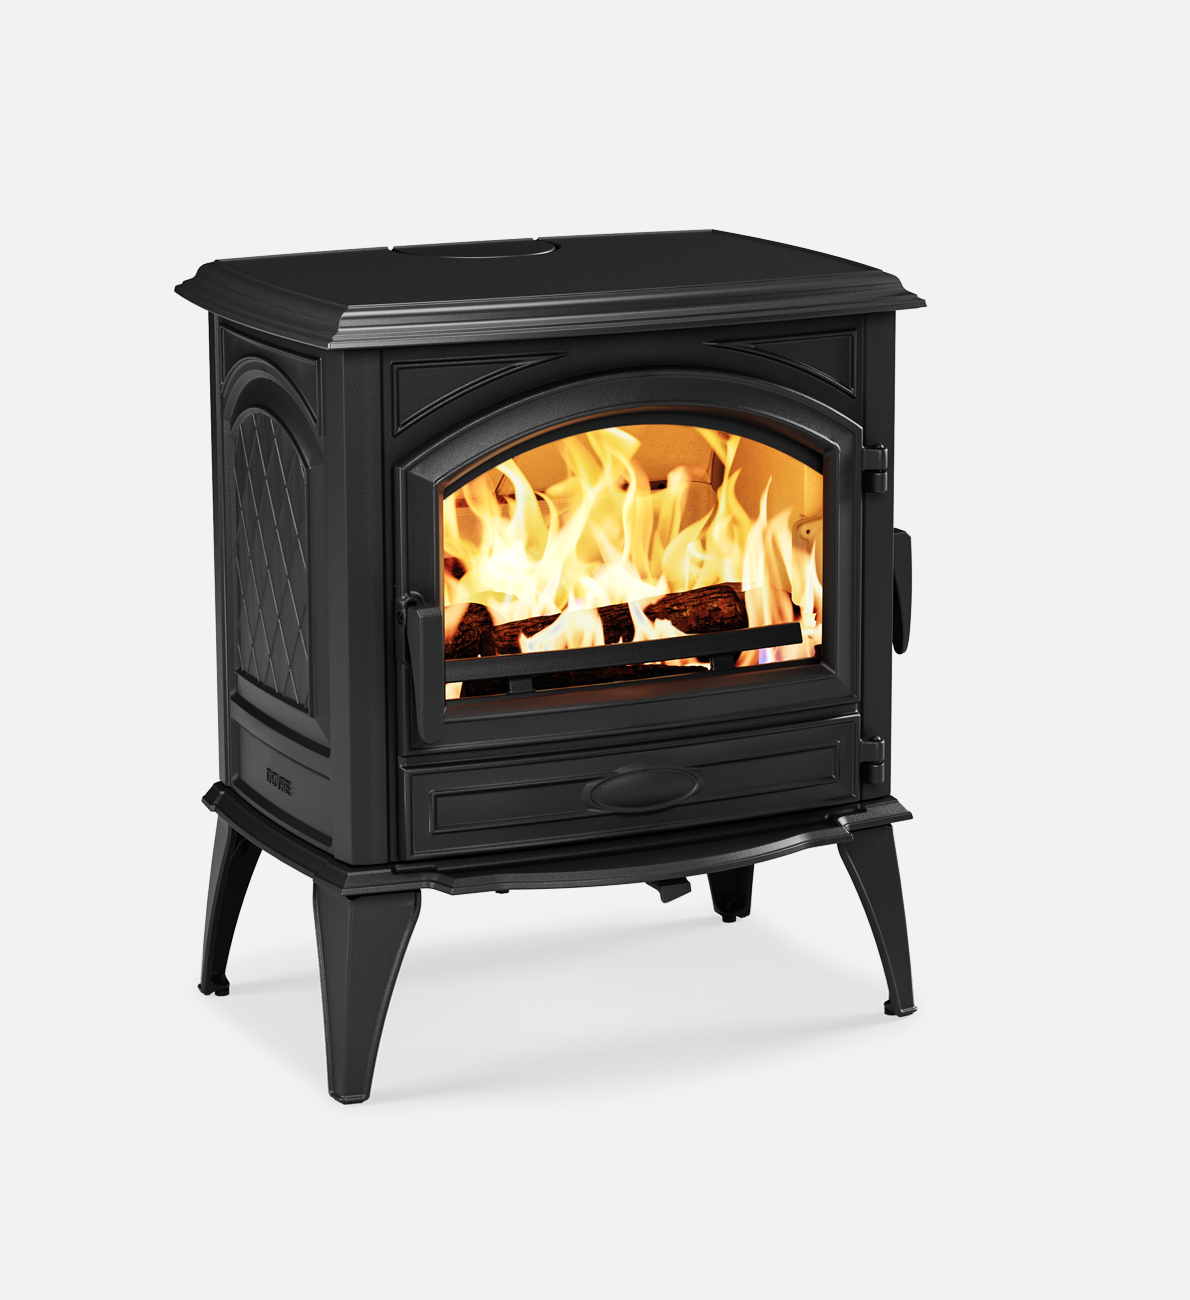 Dovre peisovn 640 wd side